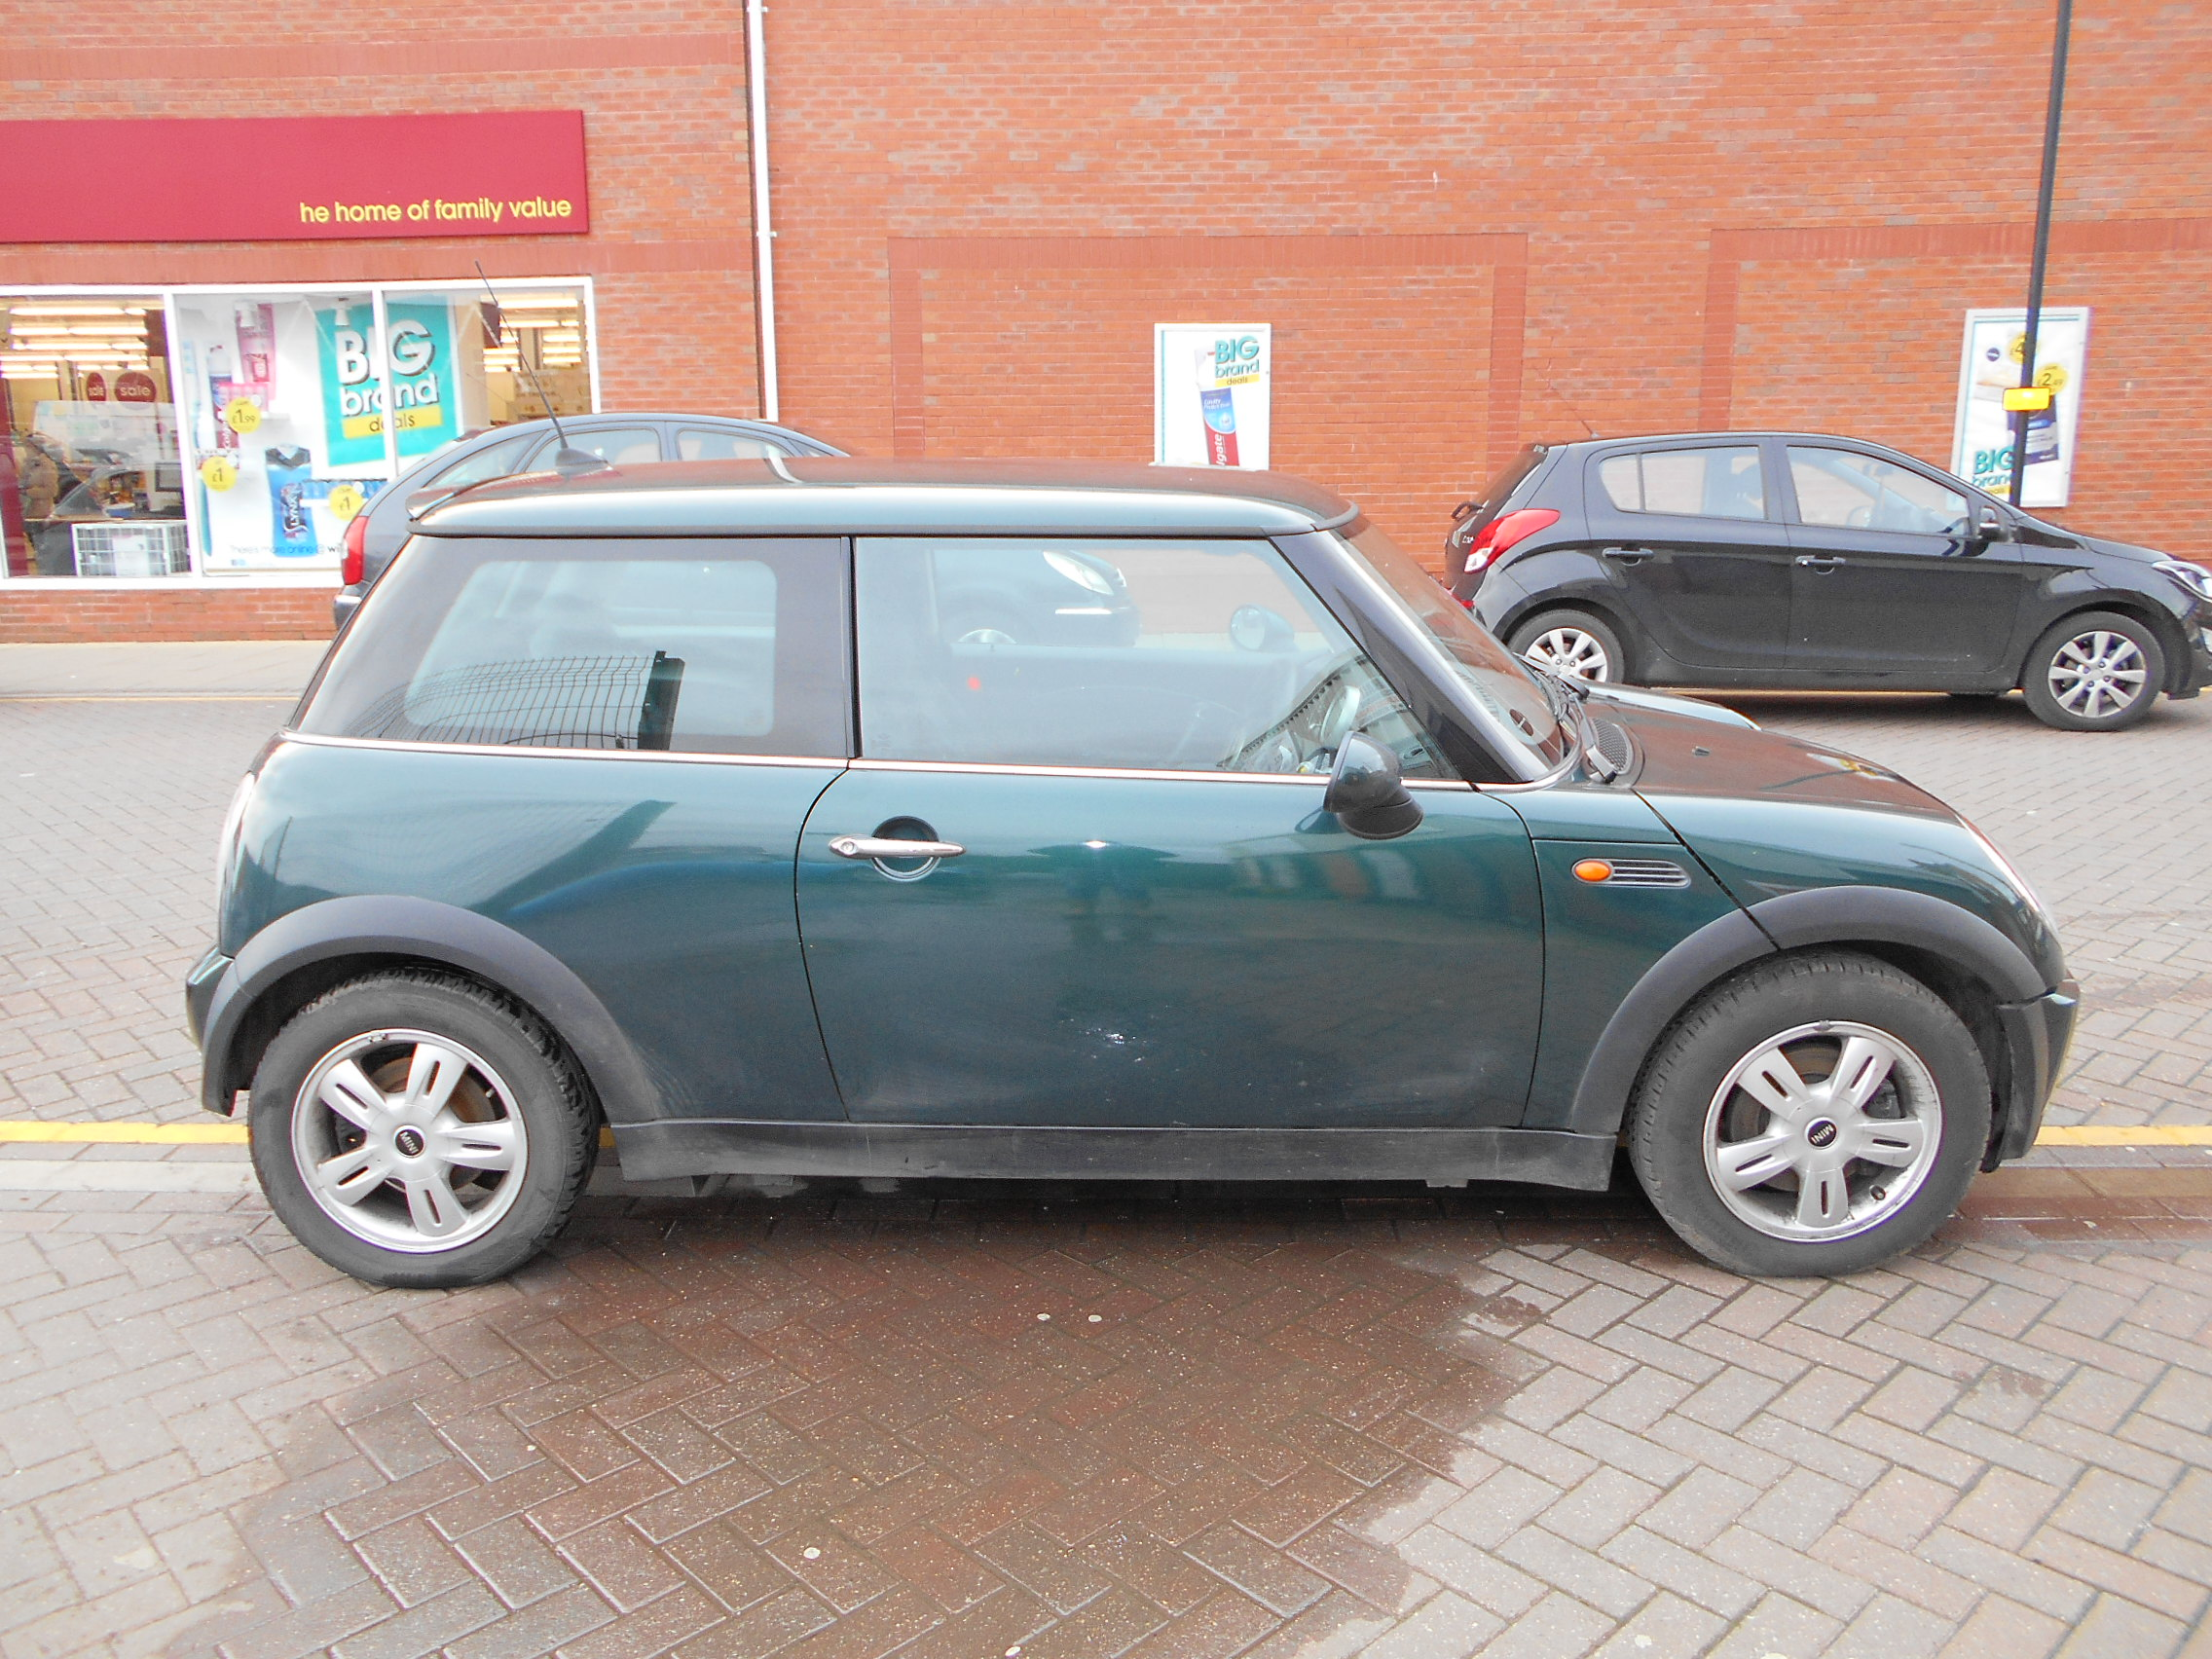 06 Green 1.6 BMW Mini One - 1